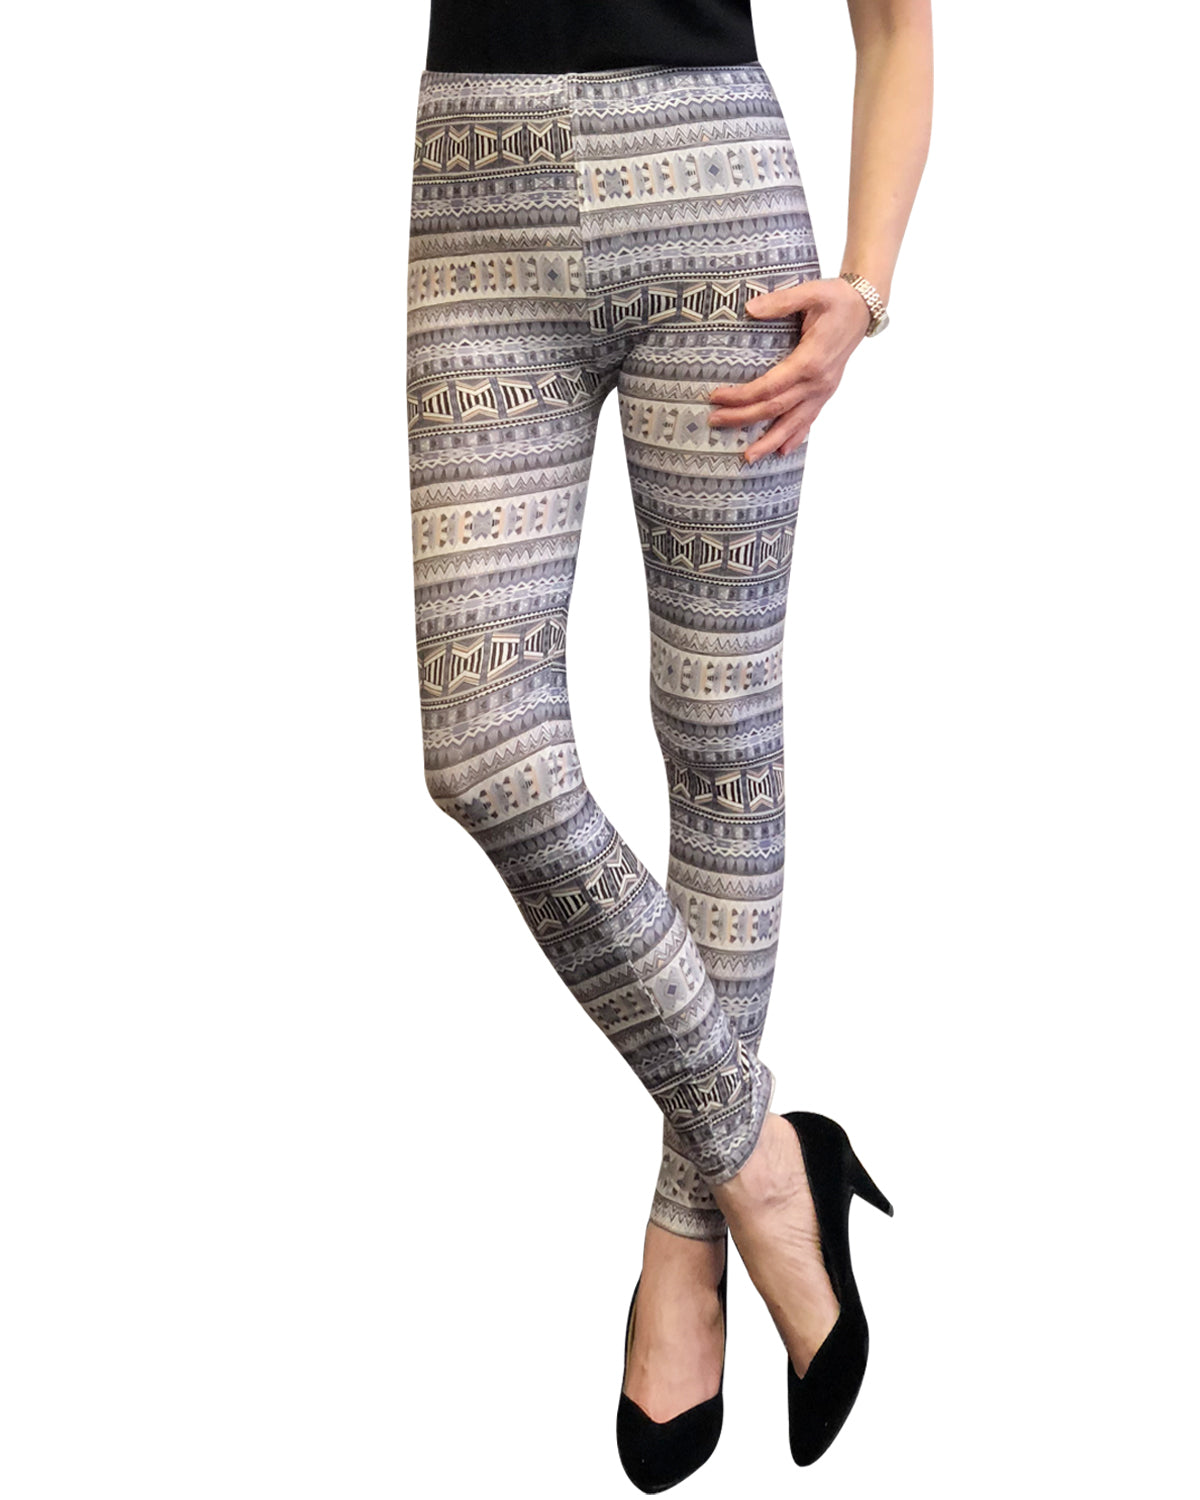 Wrapables® Women's Ultra-Soft and Stretchy Printed Leggings for Activewear and Workout